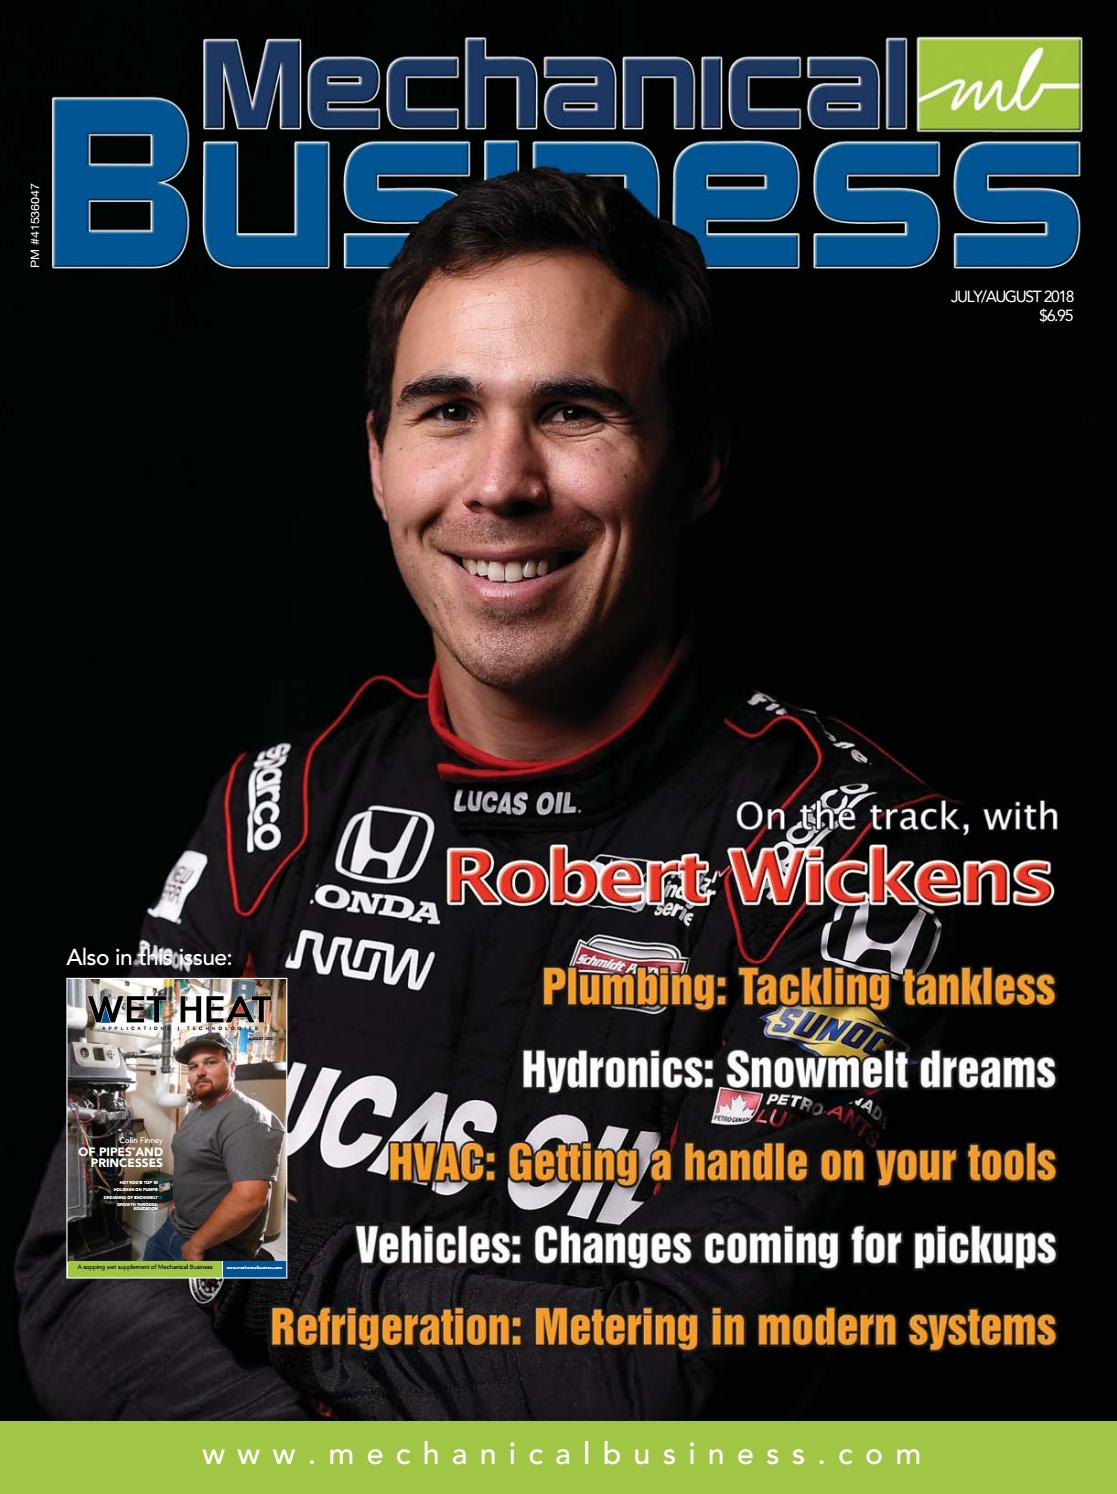 Mechanical Business July/August 2018